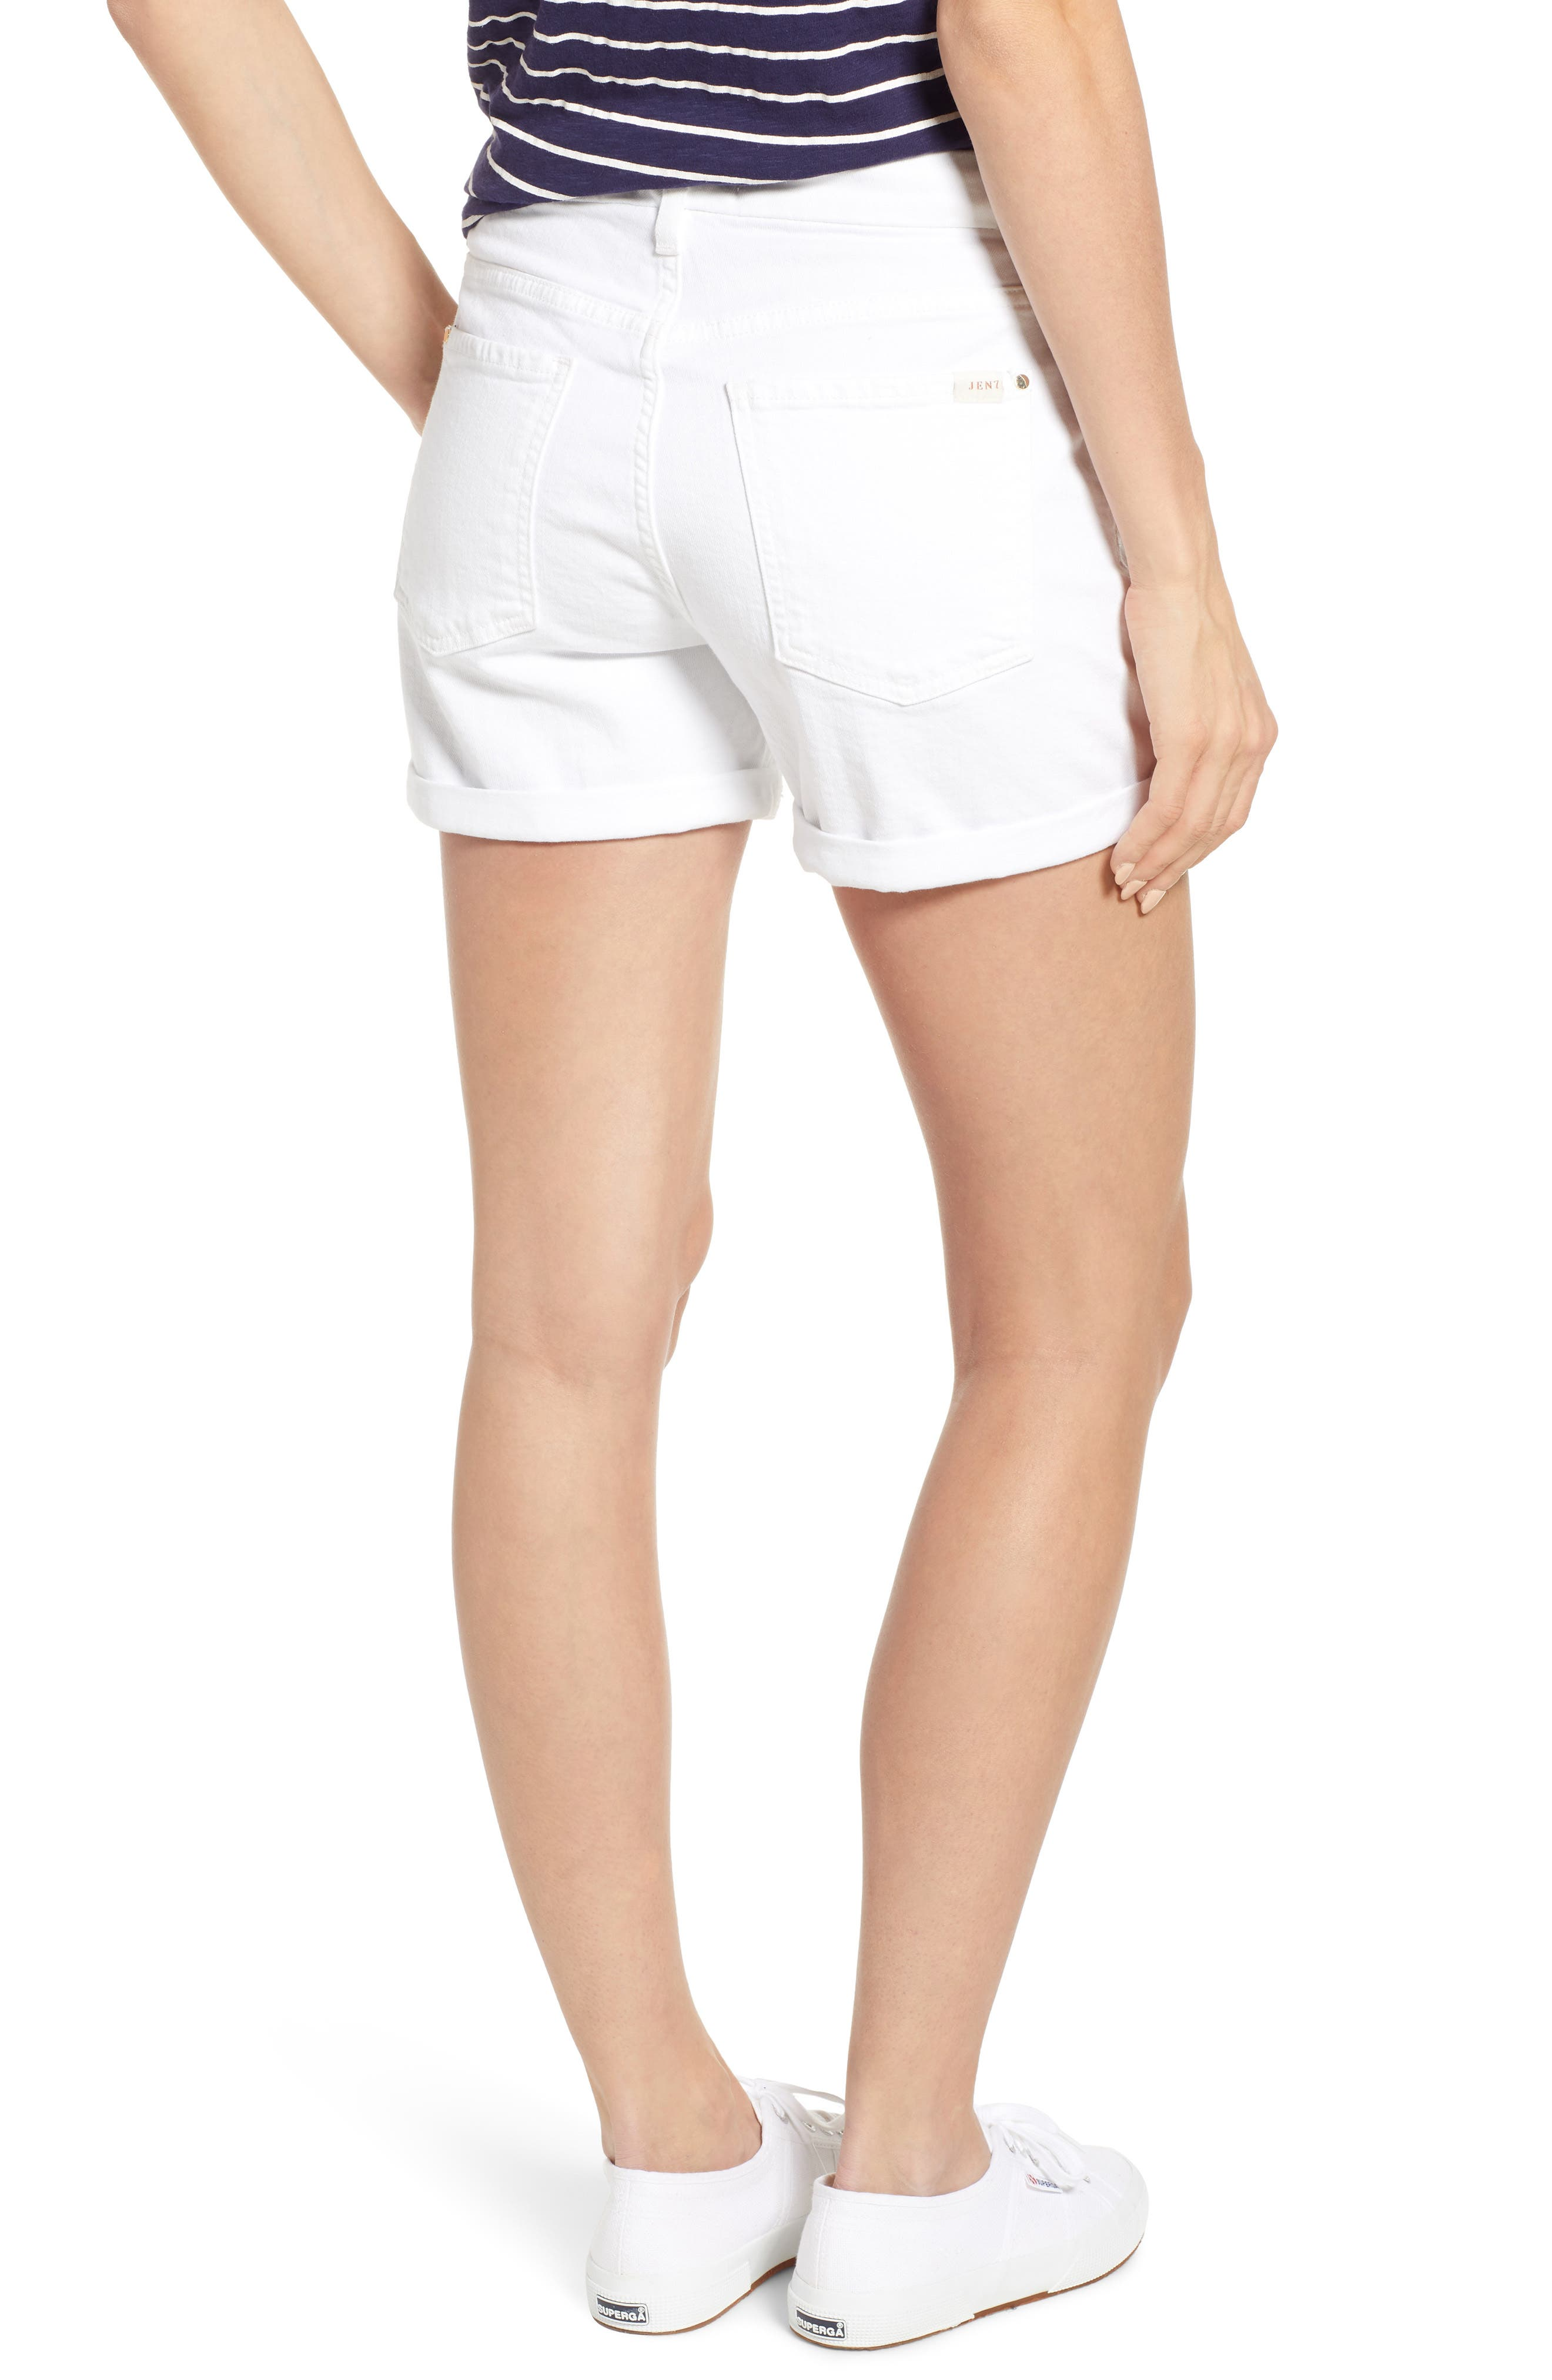 JEN7 BY 7 FOR ALL MANKIND, Roll Cuff Denim Shorts, Alternate thumbnail 2, color, WHITE FASHION